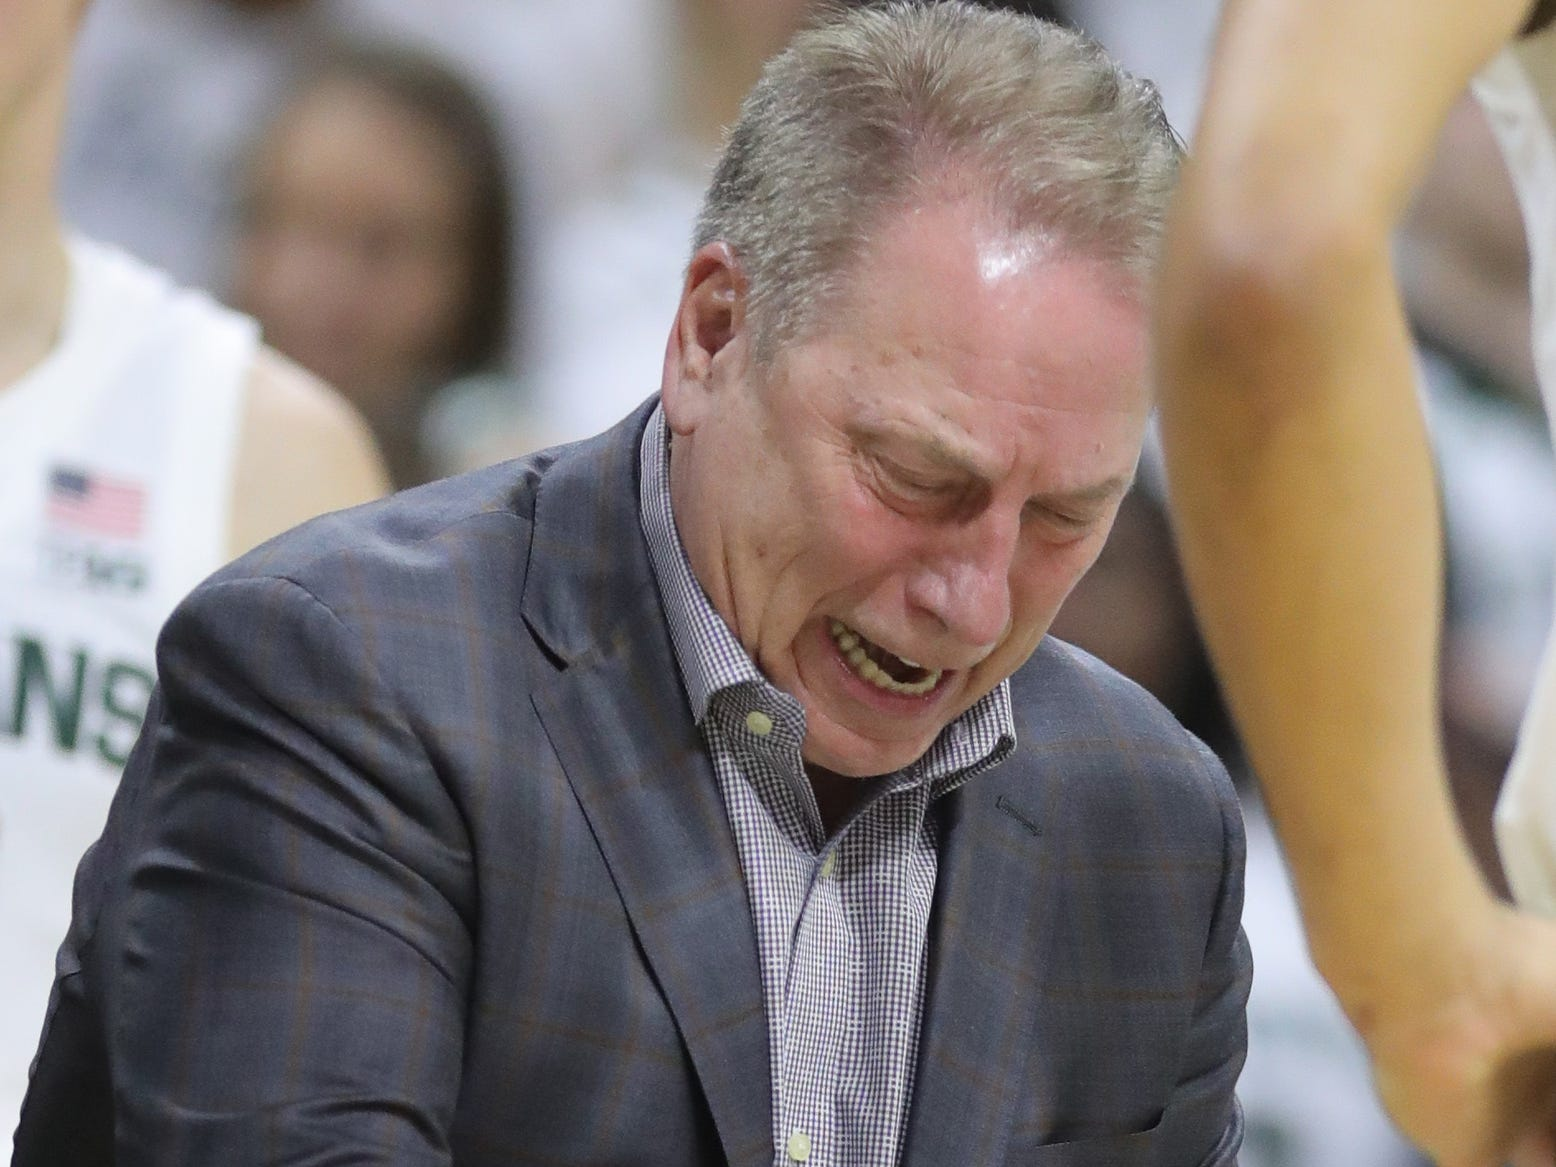 Michigan State coach Tom Izzo sets up a play during the second half of the 79-75 overtime loss to Indiana on Saturday, Feb. 2, 2019, in East Lansing.